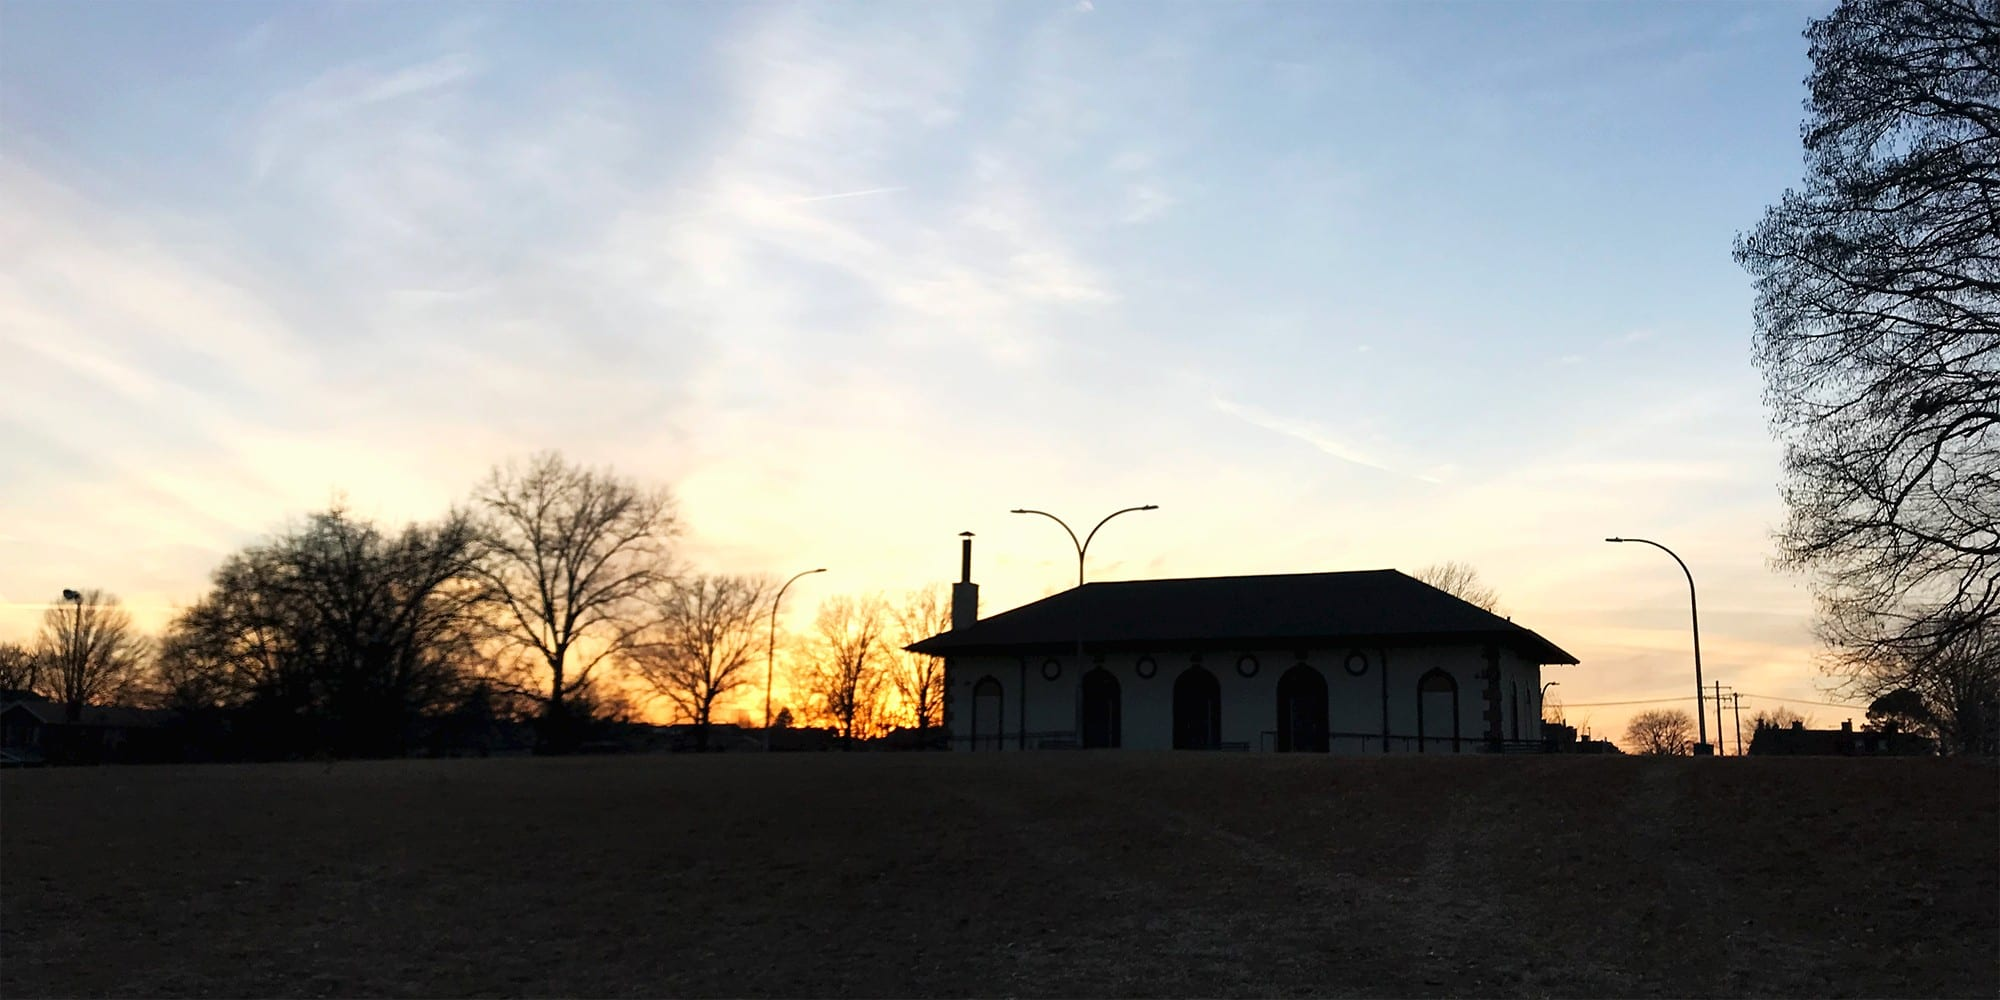 The Marquette Park Field House at sunset. Photo by Nick Findley.